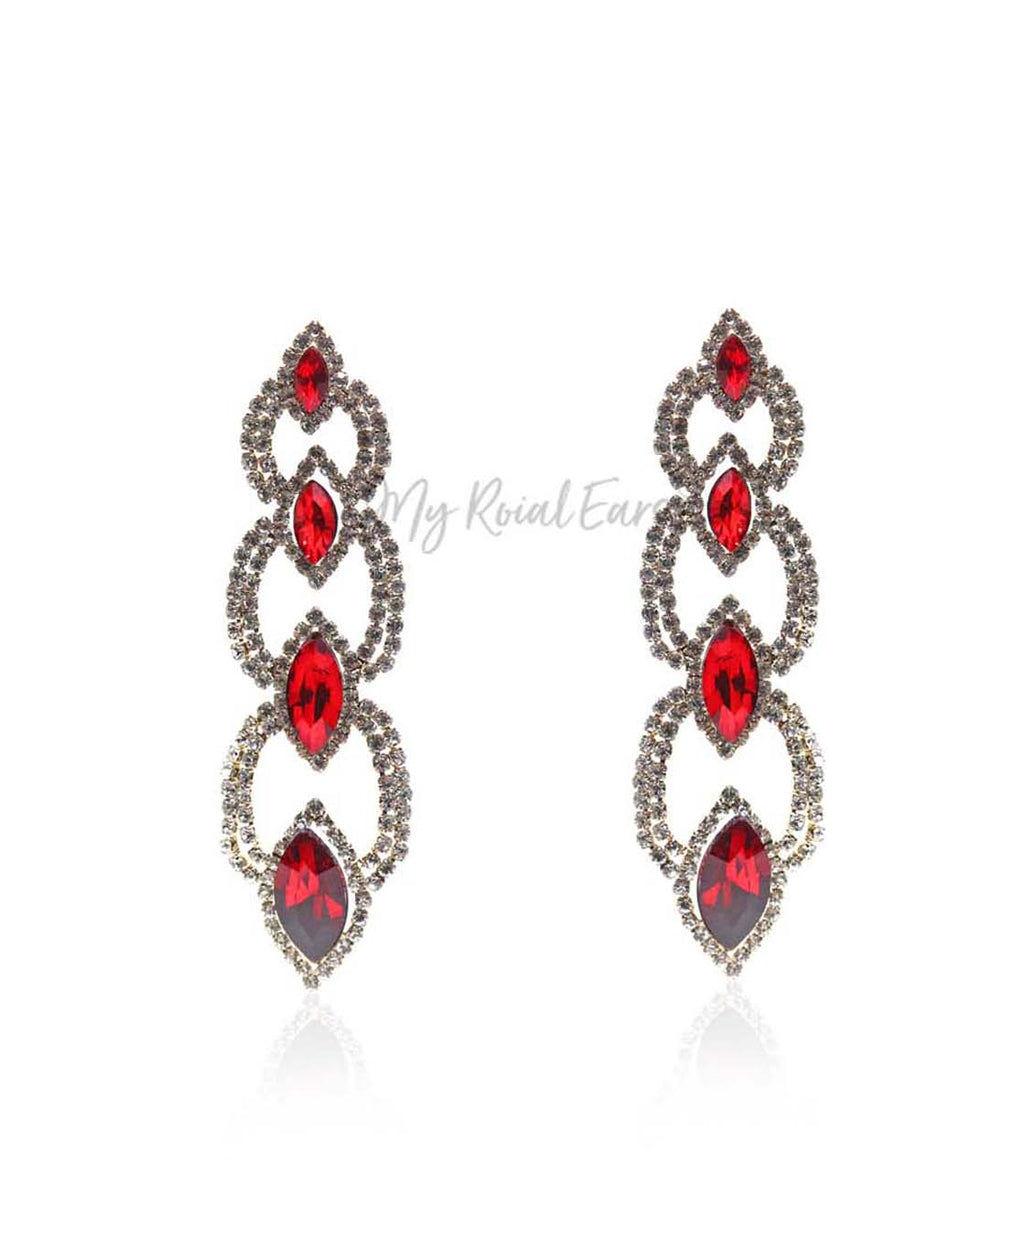 Q.Savannah Red-long crystal statement drop earrings - My Roial Ears LTD